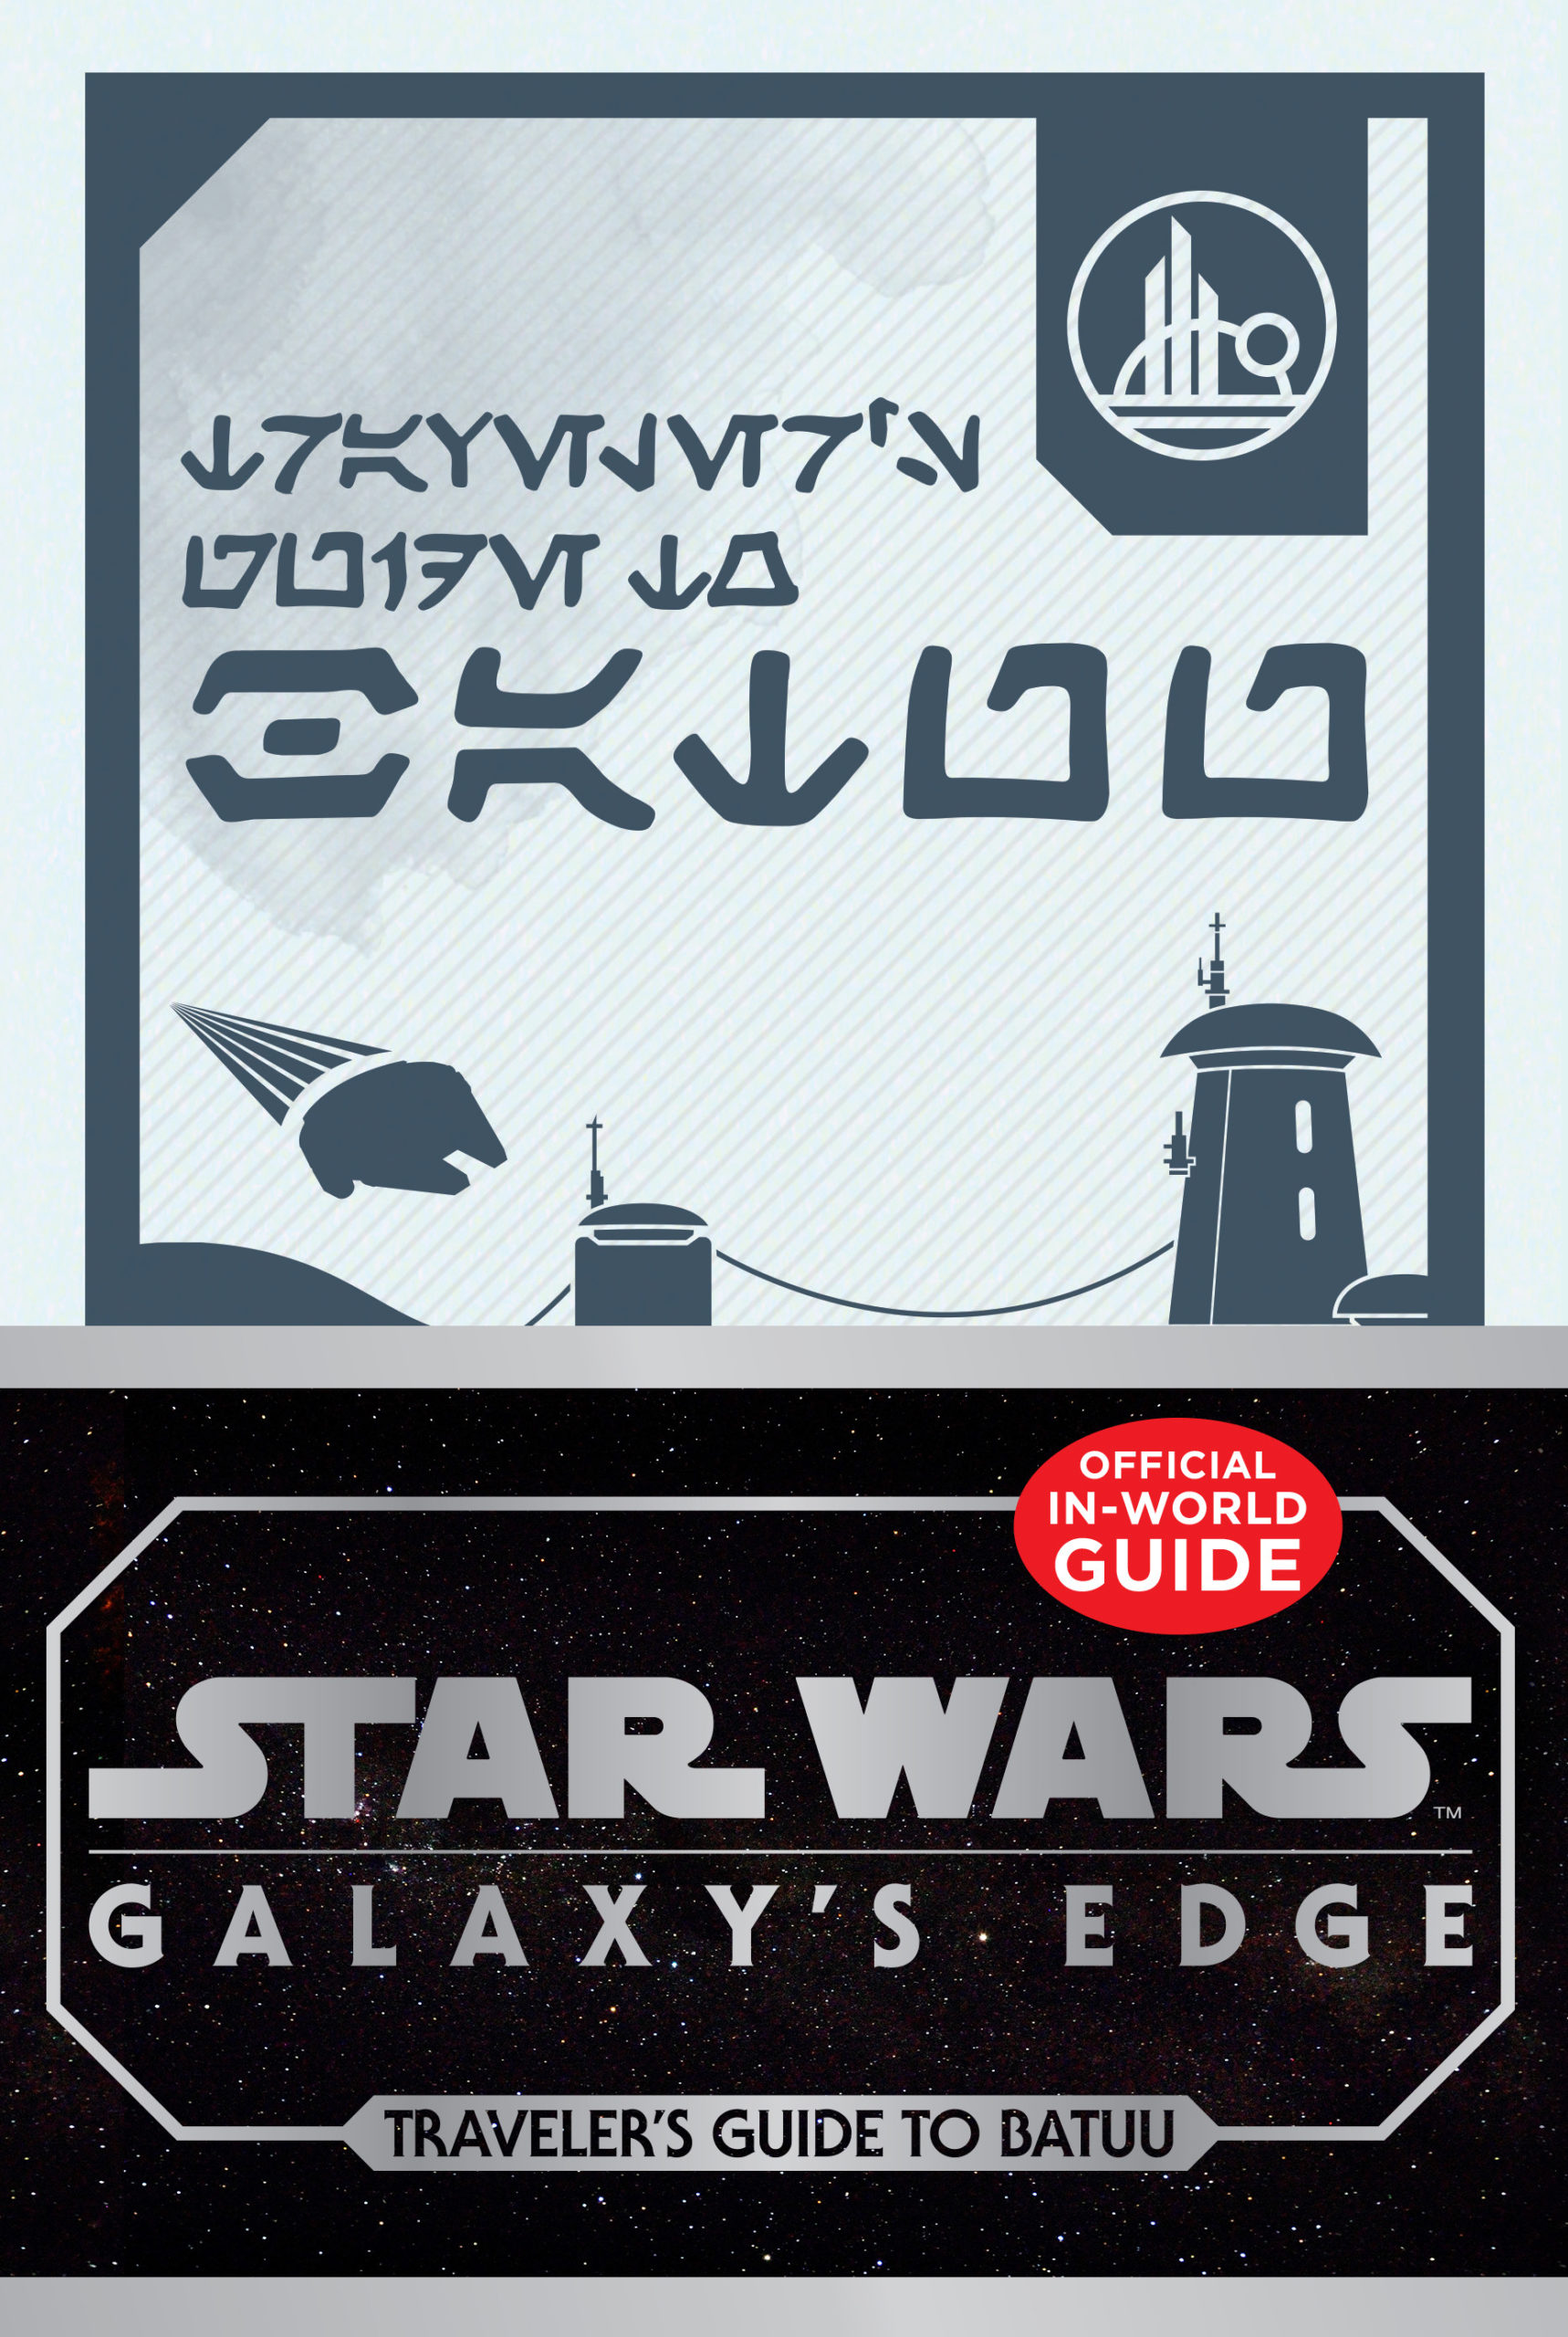 Galaxy's Edge: Traveler's Guide to Batuu (23.06.2020)